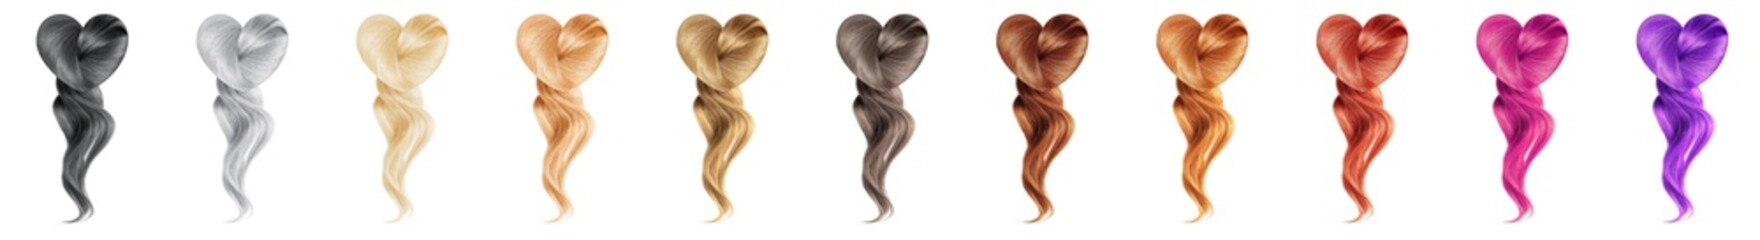 Collection various colors of shiny hair in shape of heart on white background, isolated